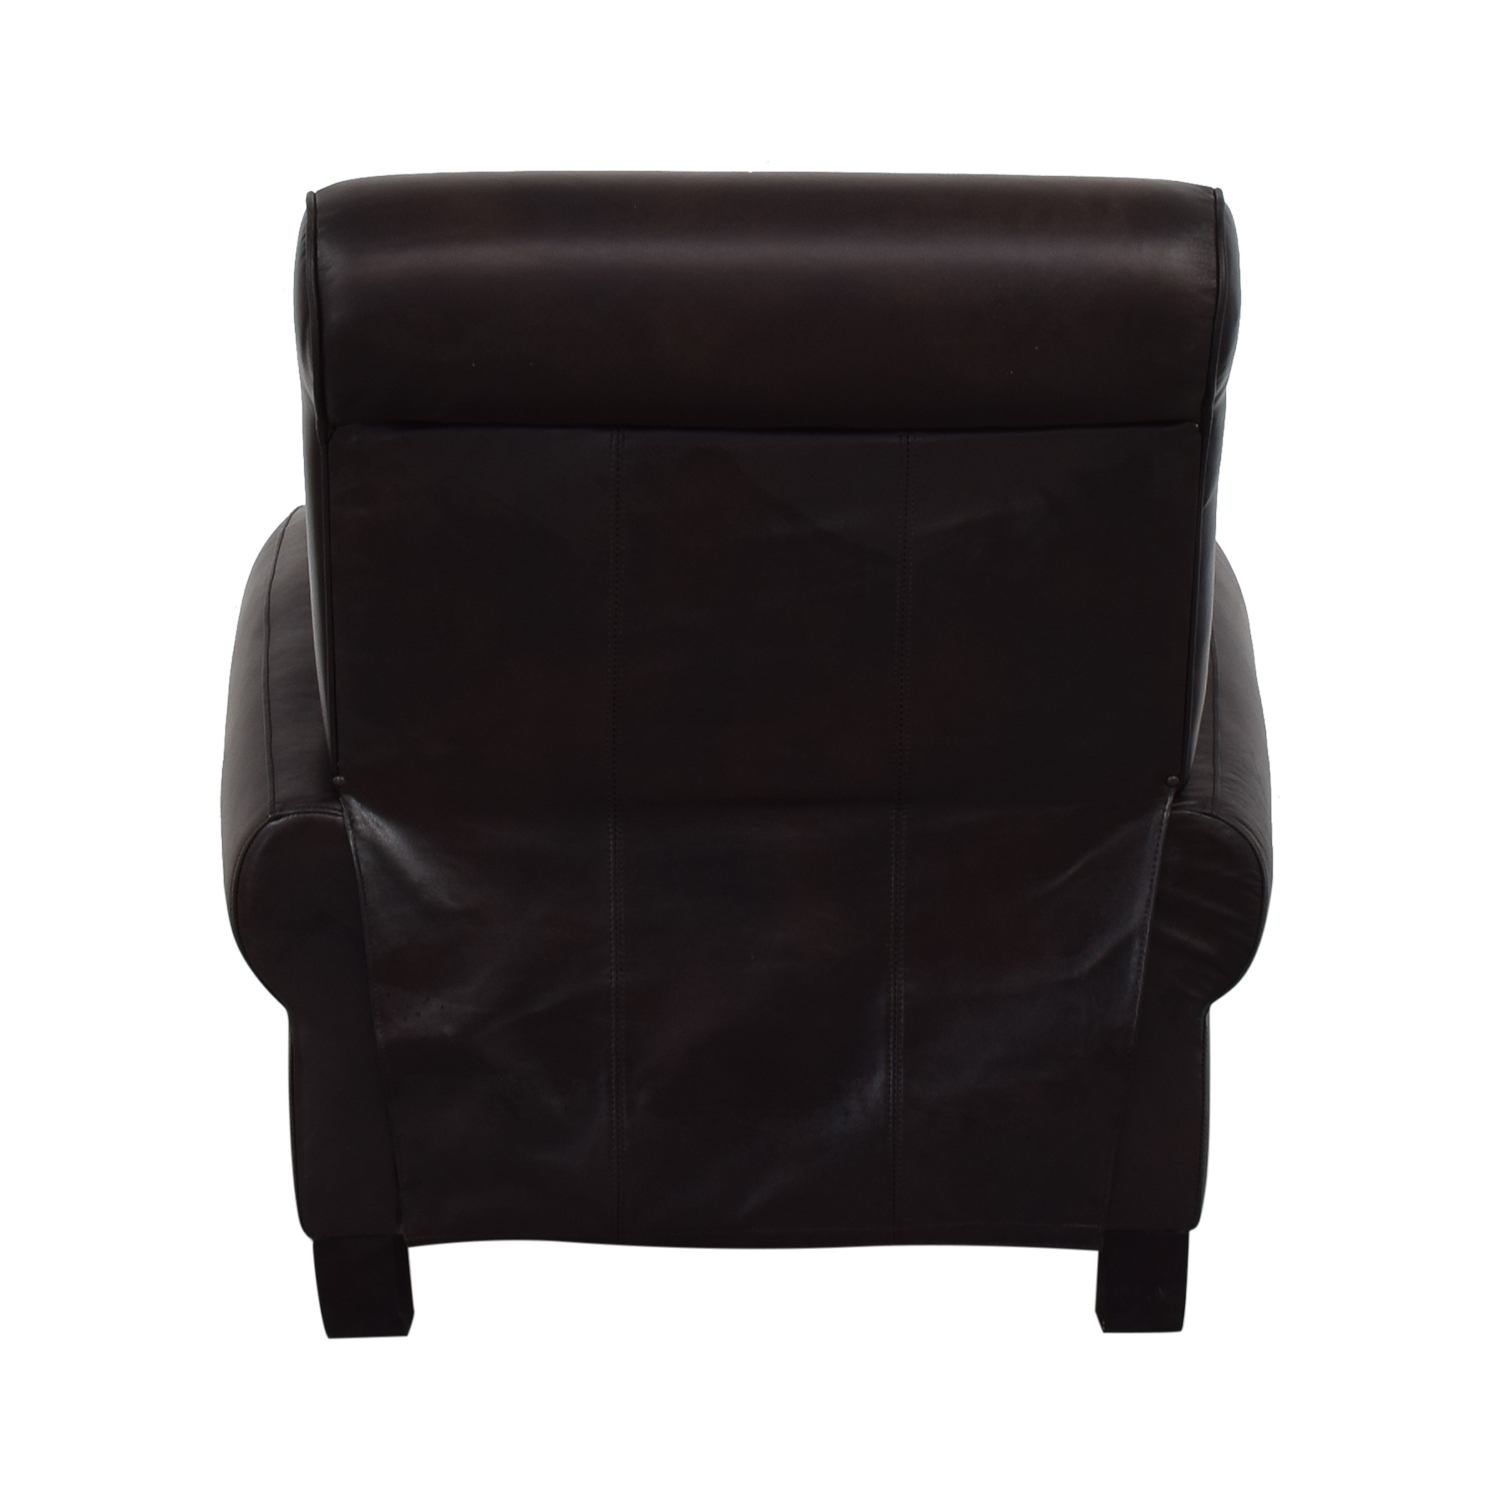 At Home Designs Ambassador Glider Recliner sale